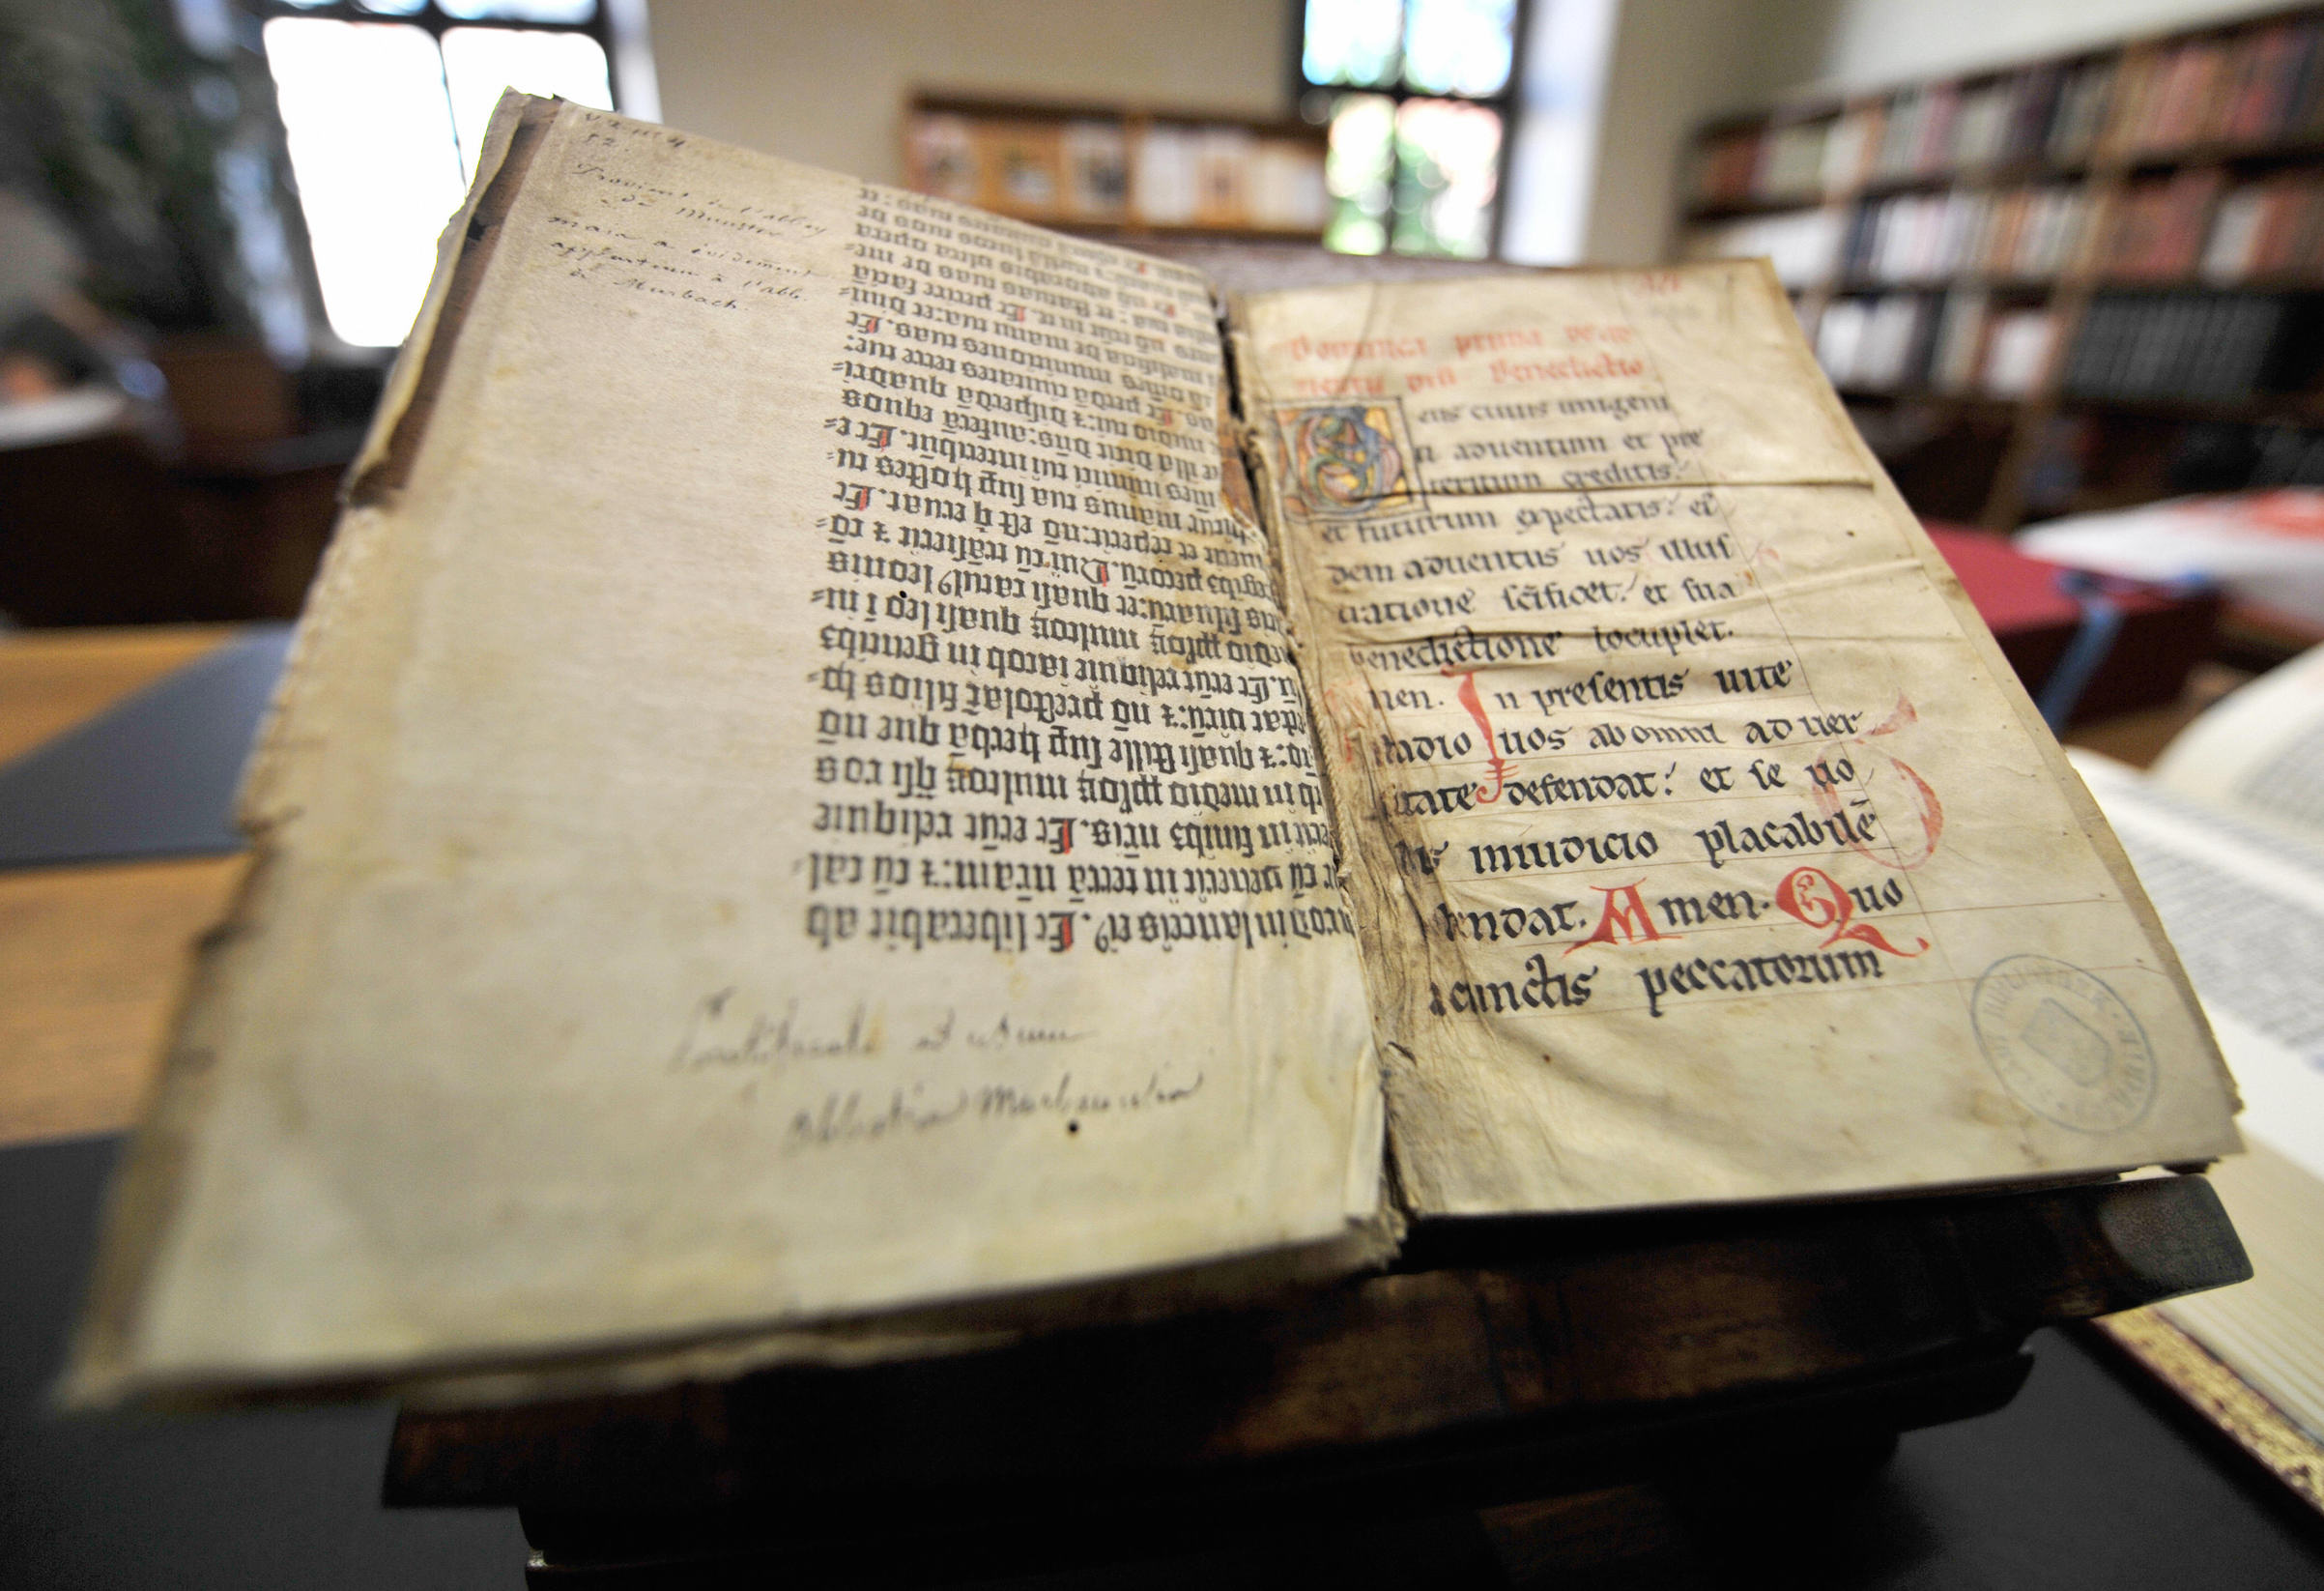 A picture taken on May 29, 2009 in Colmar, northeastern France, shows pages of the Gutenberg Bible discovered in a library by a library assistant,